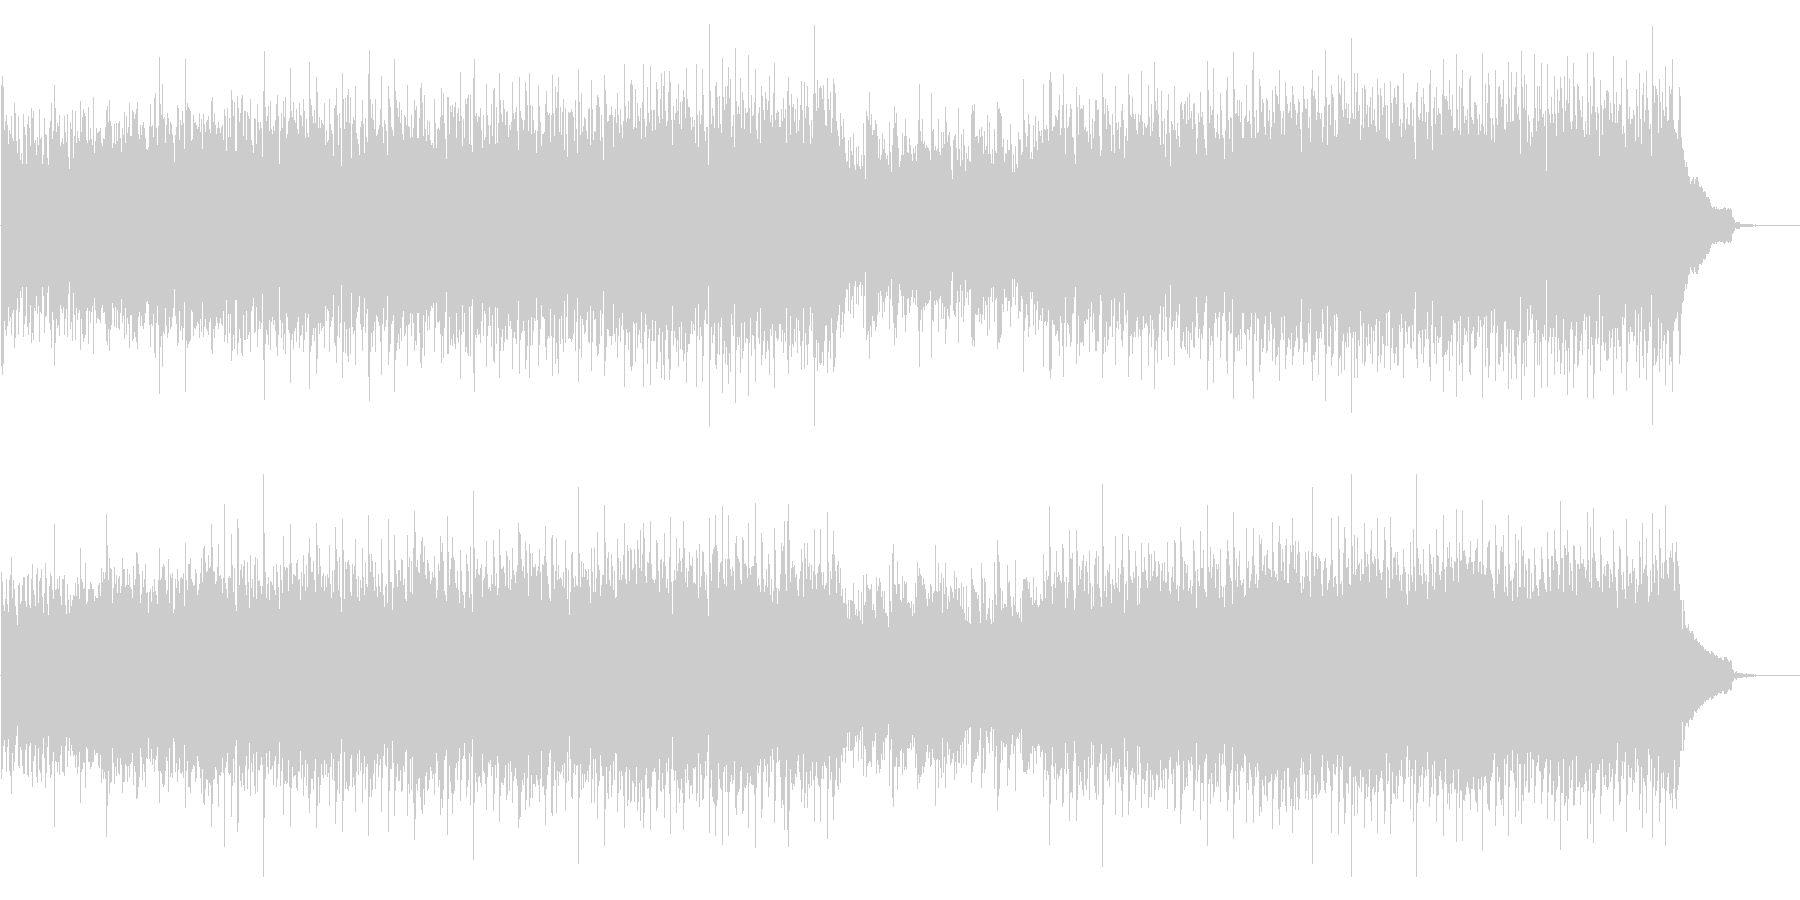 [Drums removed] Up-tempo and refreshing for corporation's unreproduced waveform